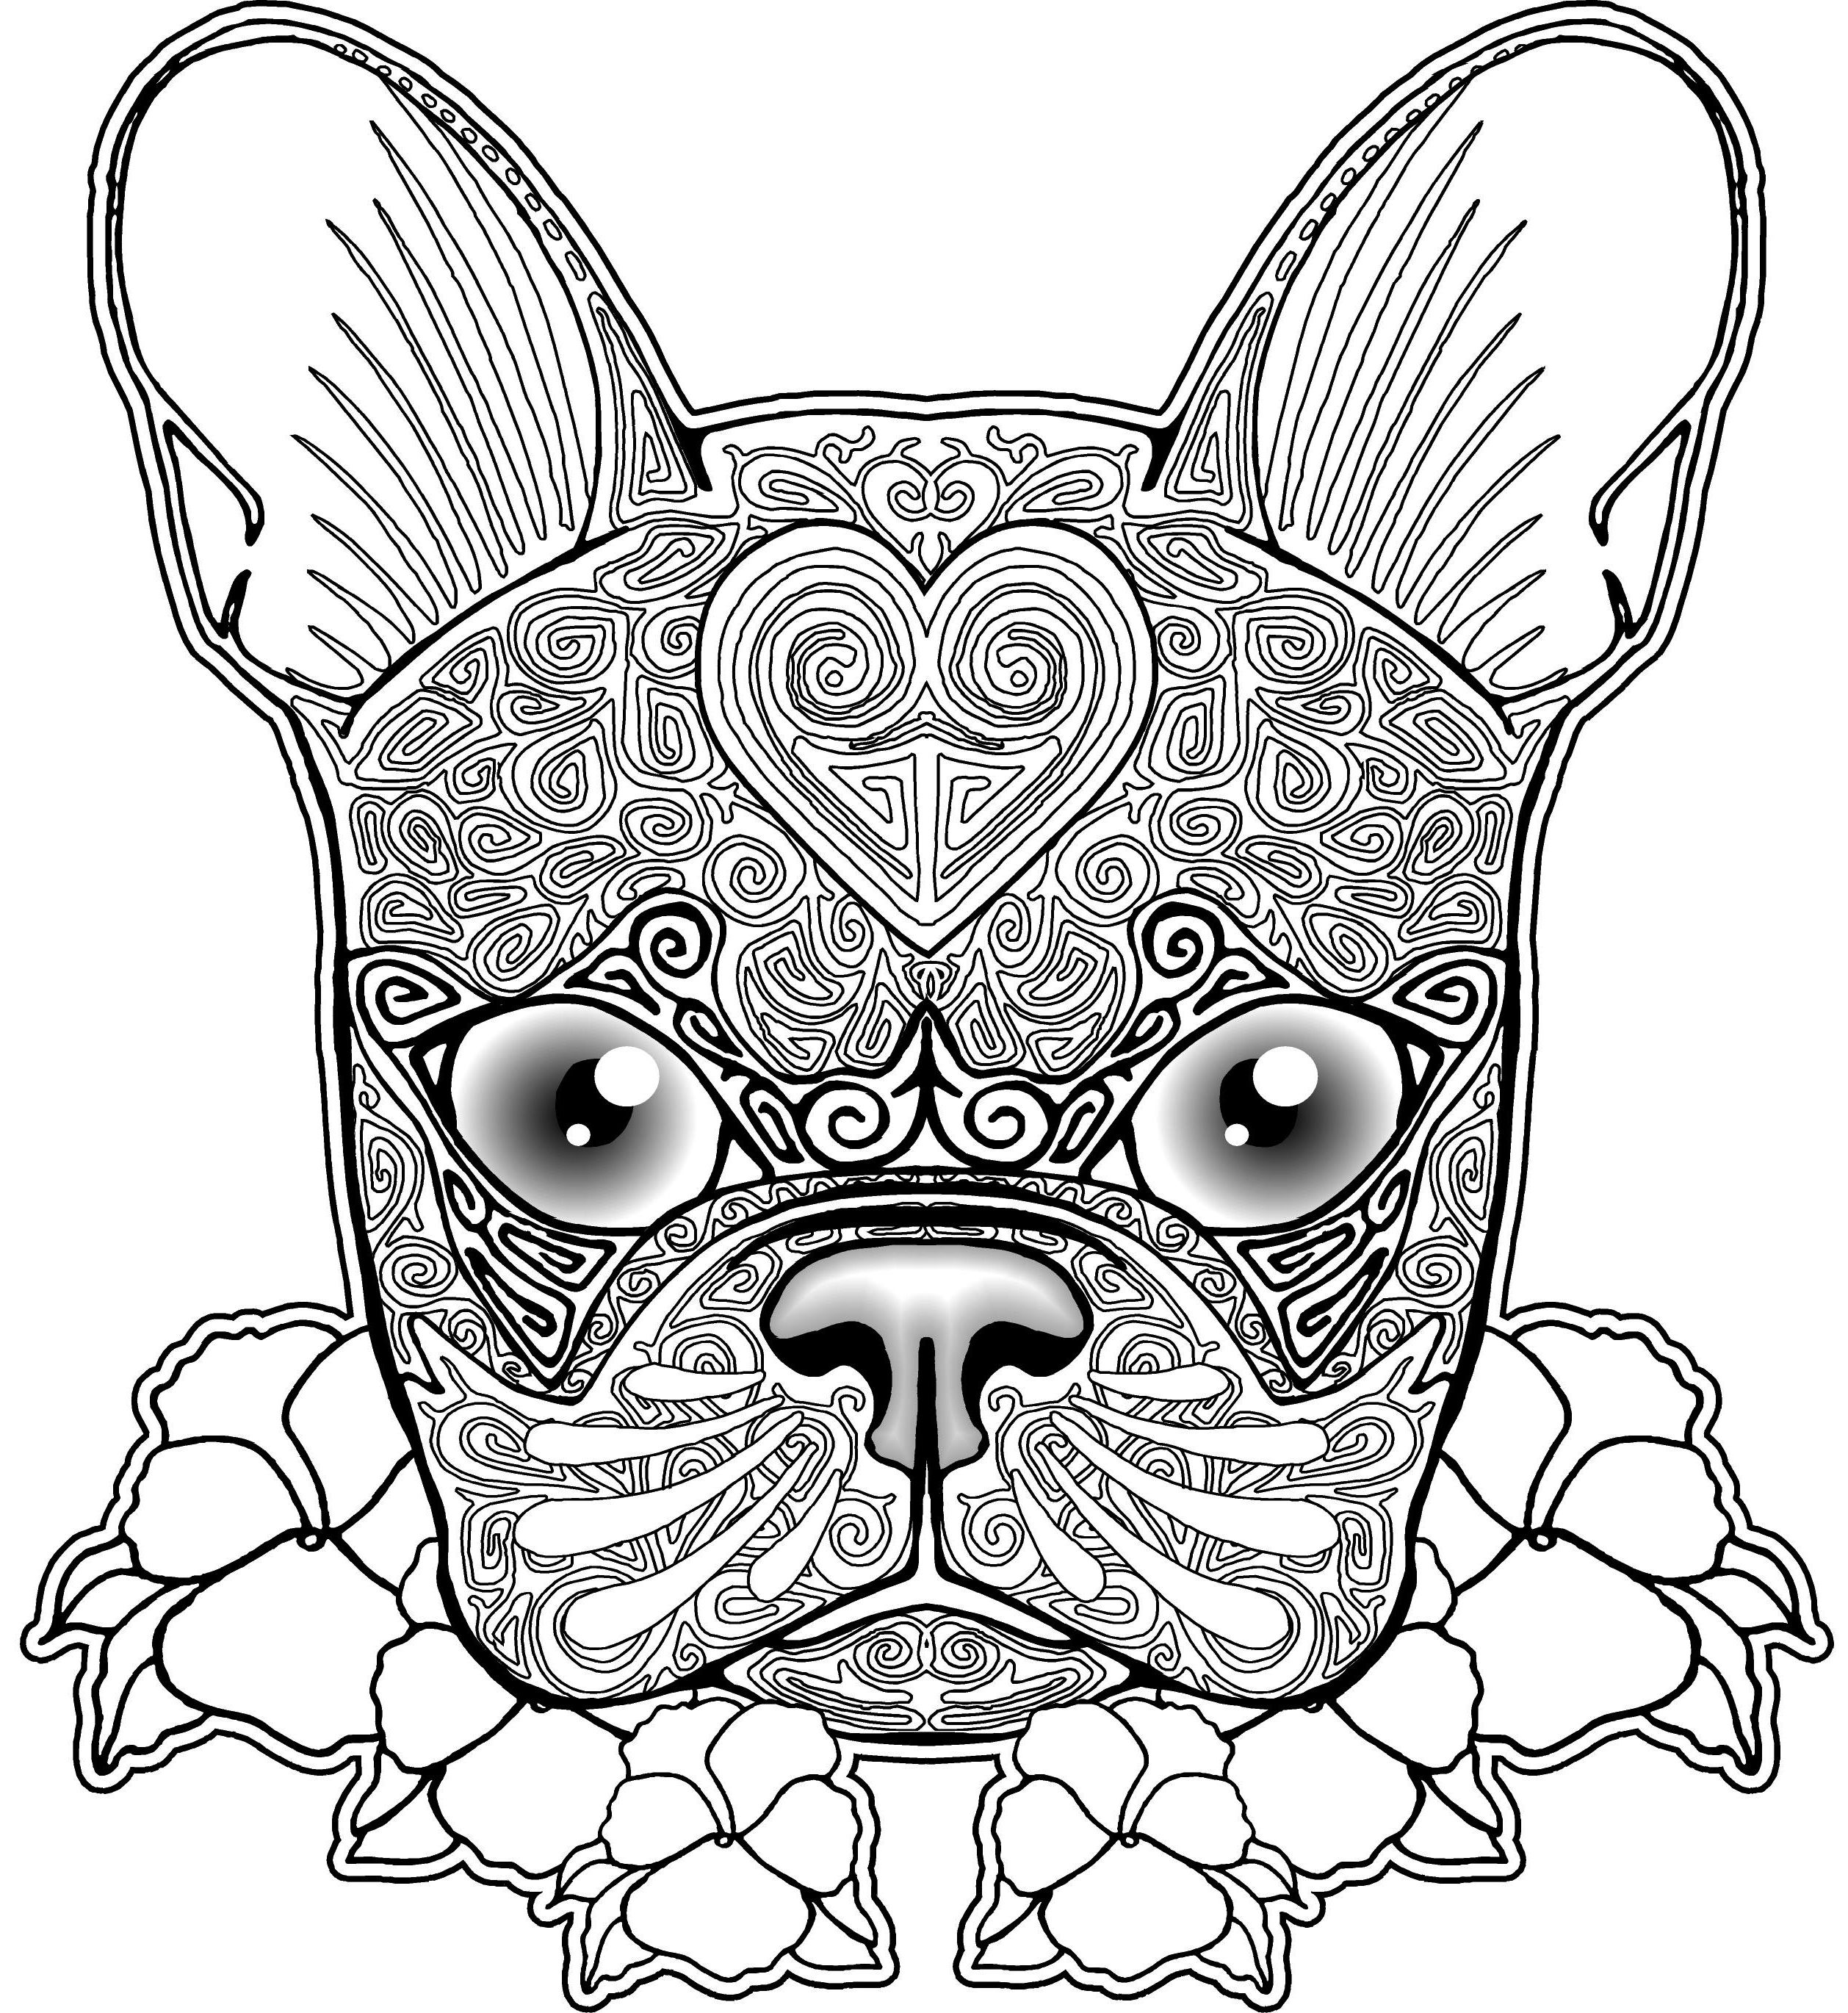 coloring sheet dog puppy coloring pages best coloring pages for kids coloring sheet dog